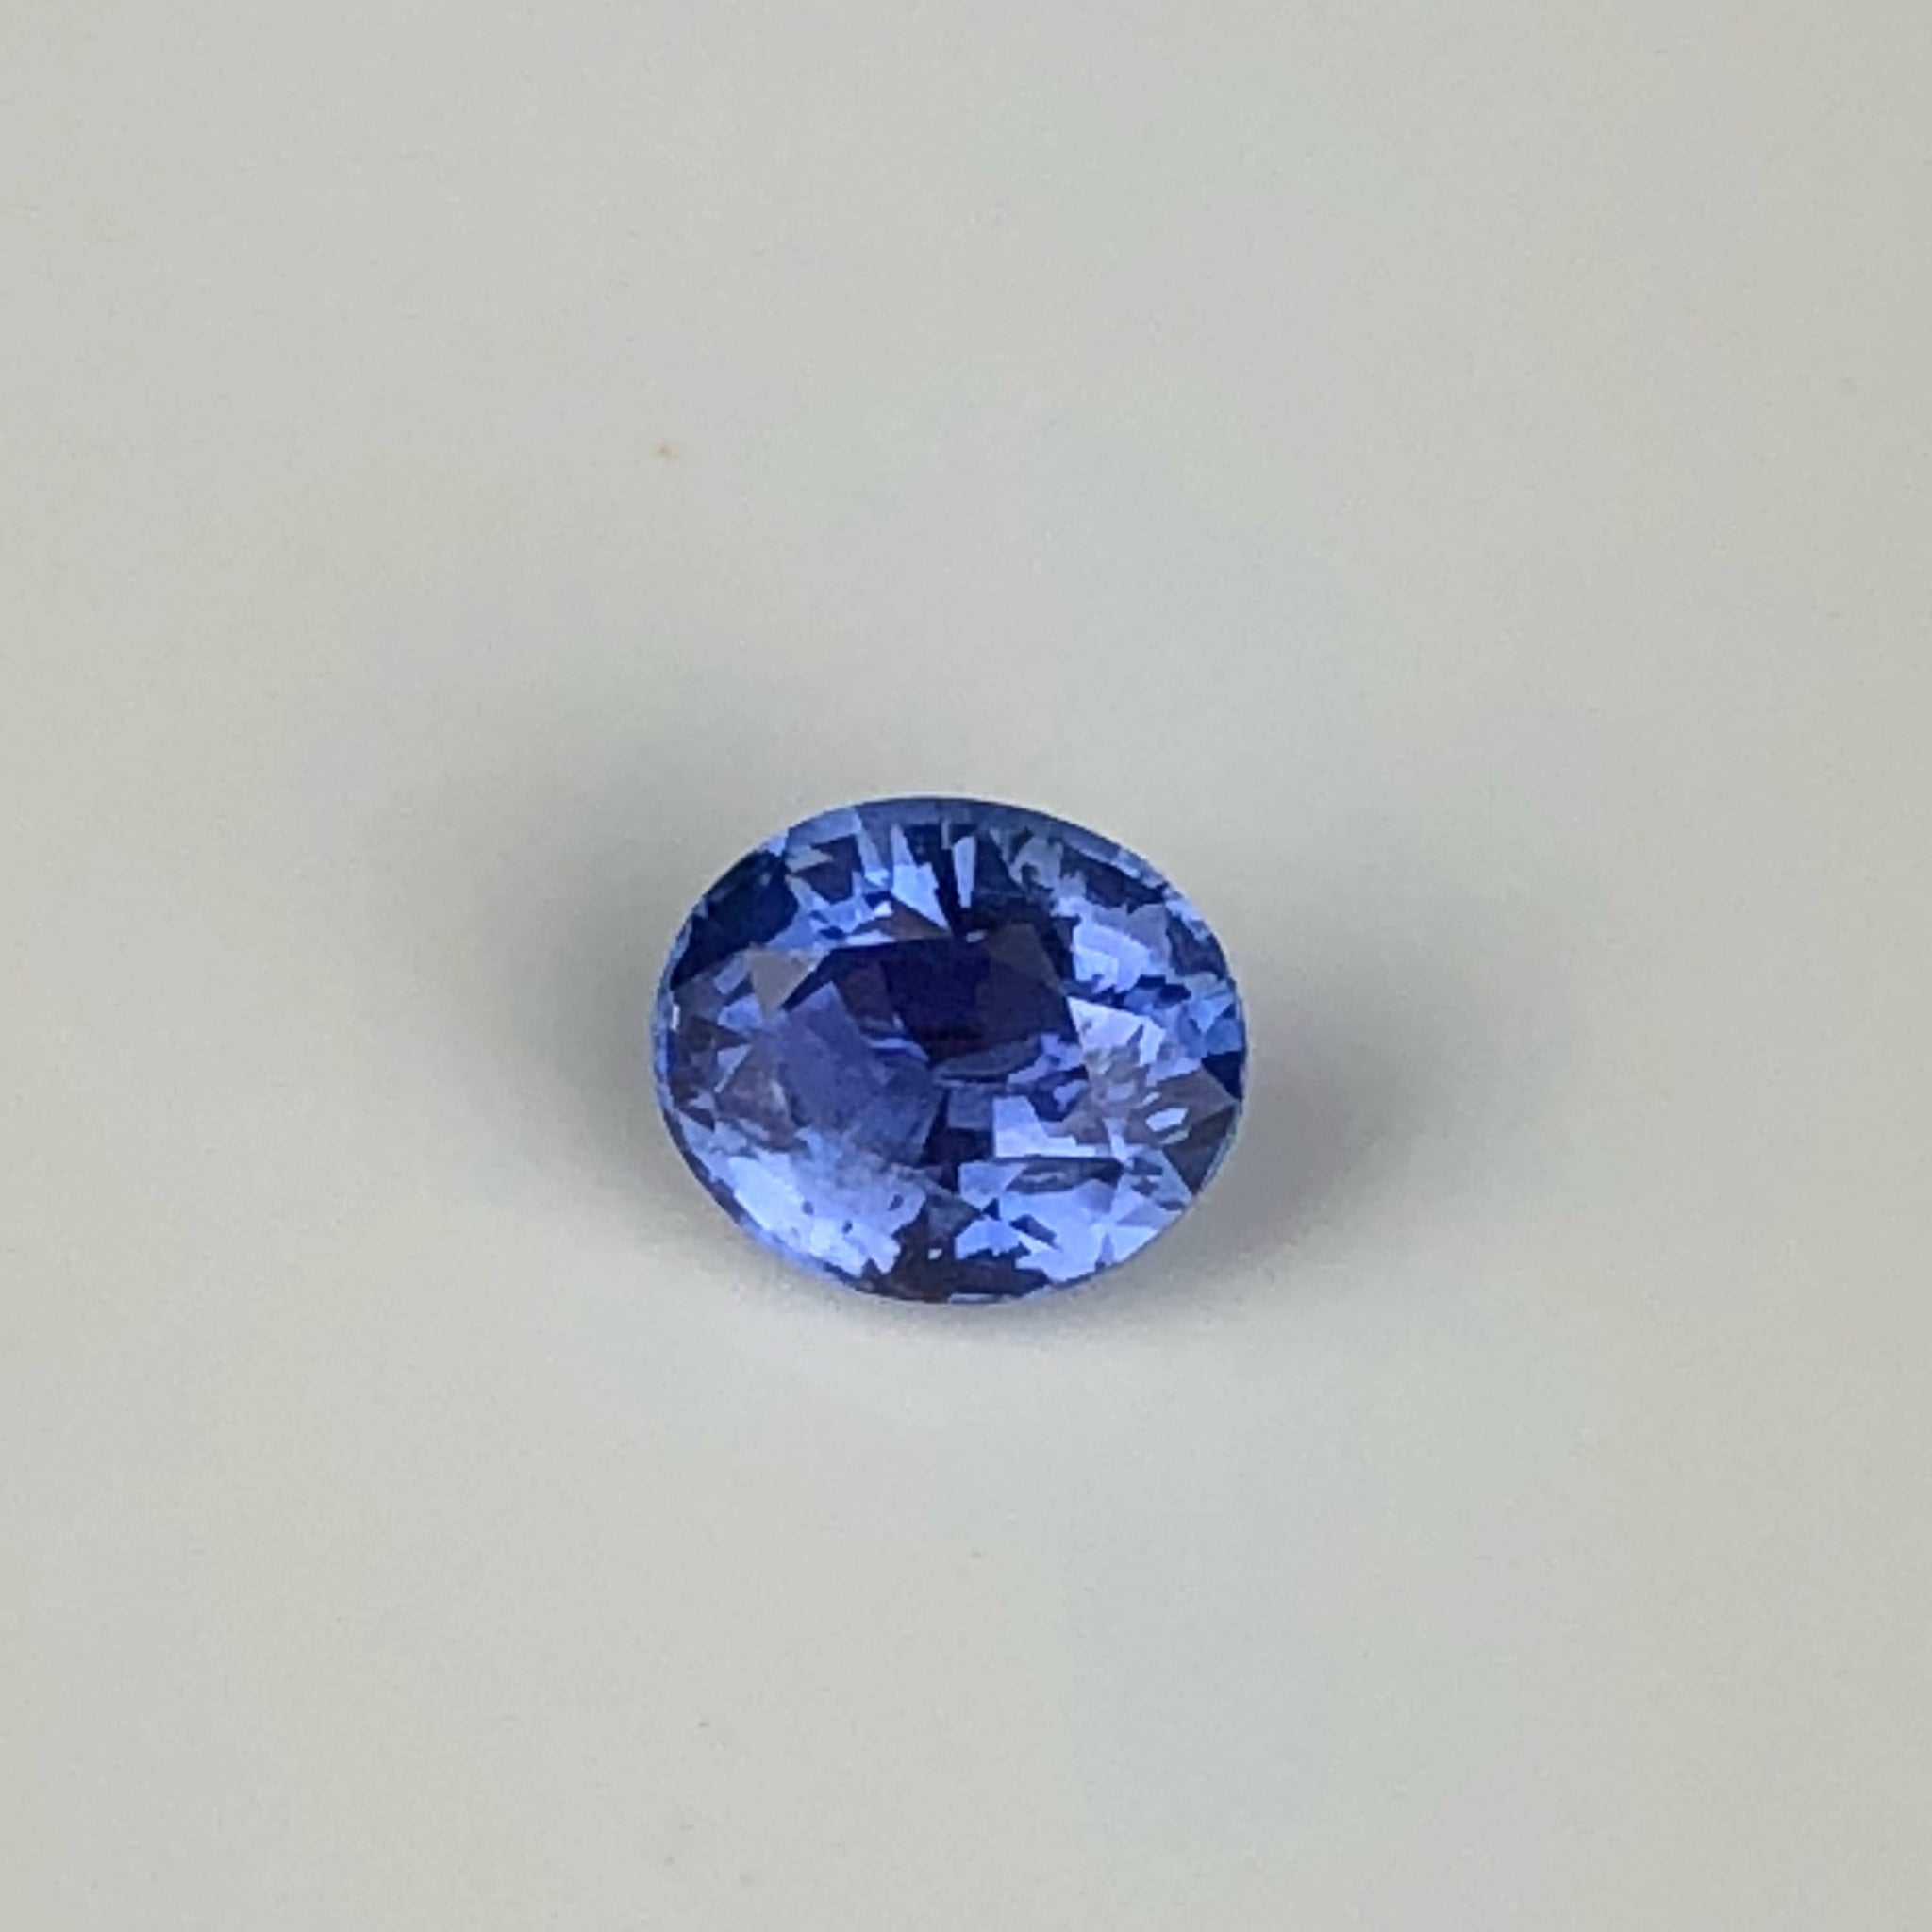 jyotish and sapphire gemstone blue price untreated quality for best sale stone